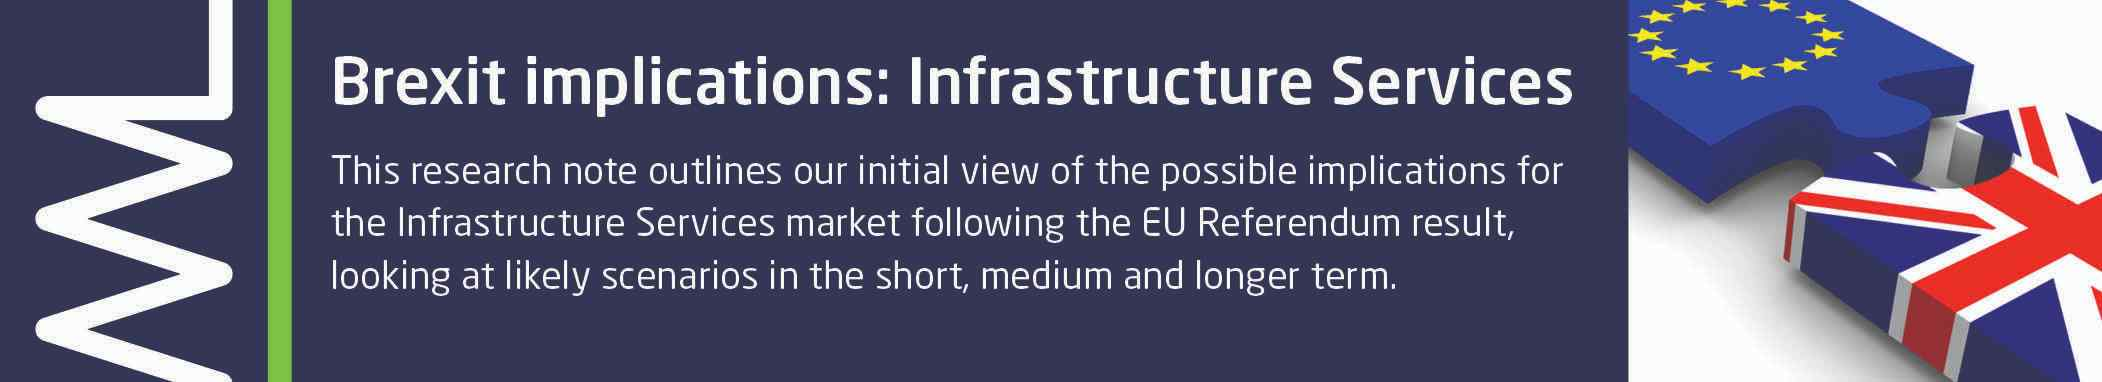 Brexit implications for Infrastructure Services